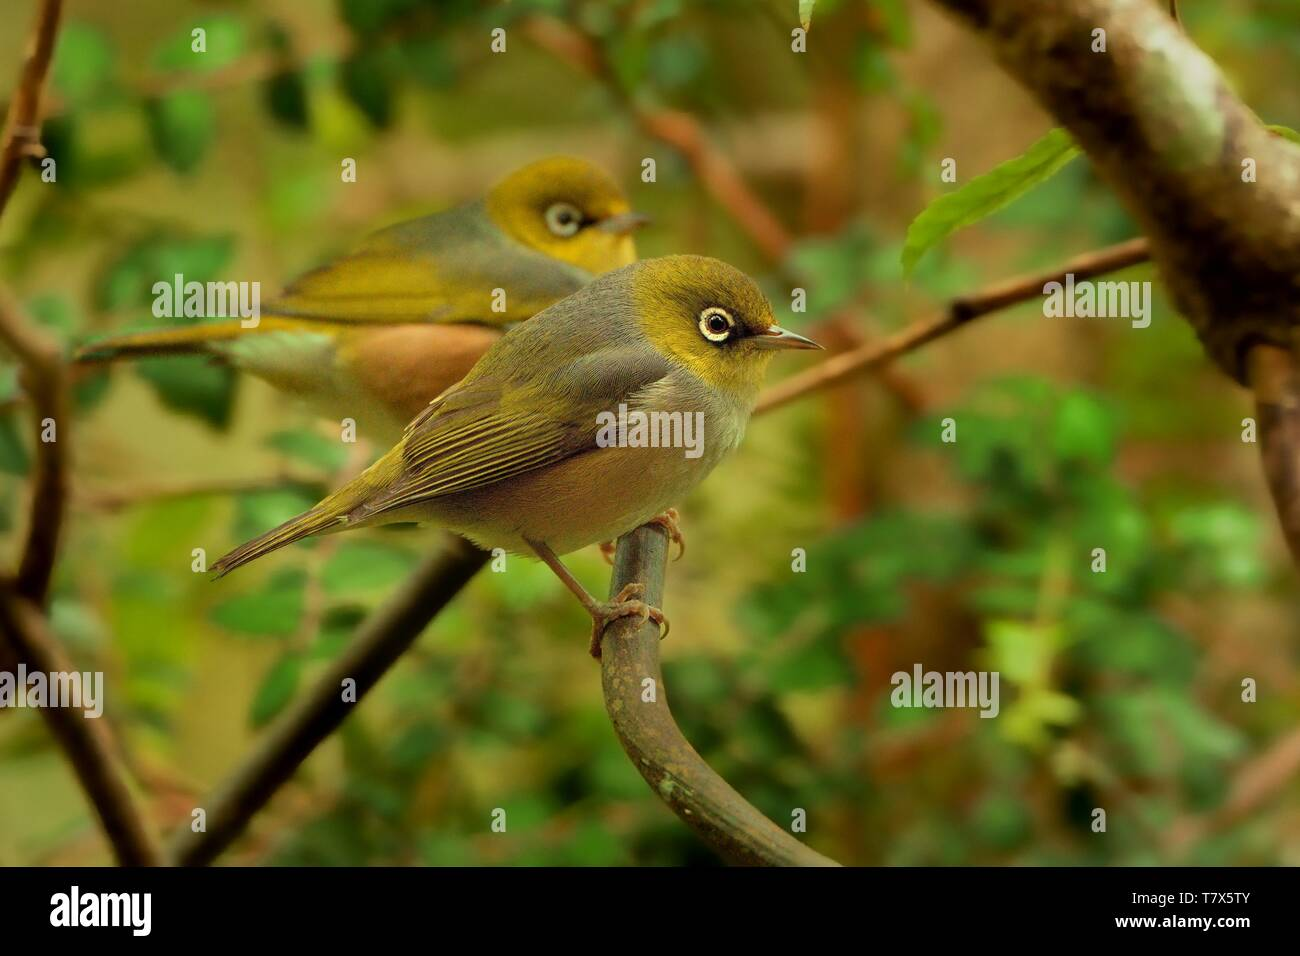 Zosterops lateralis - Silvereye - tauhou in the primeval forest in New Zealand - Stock Image